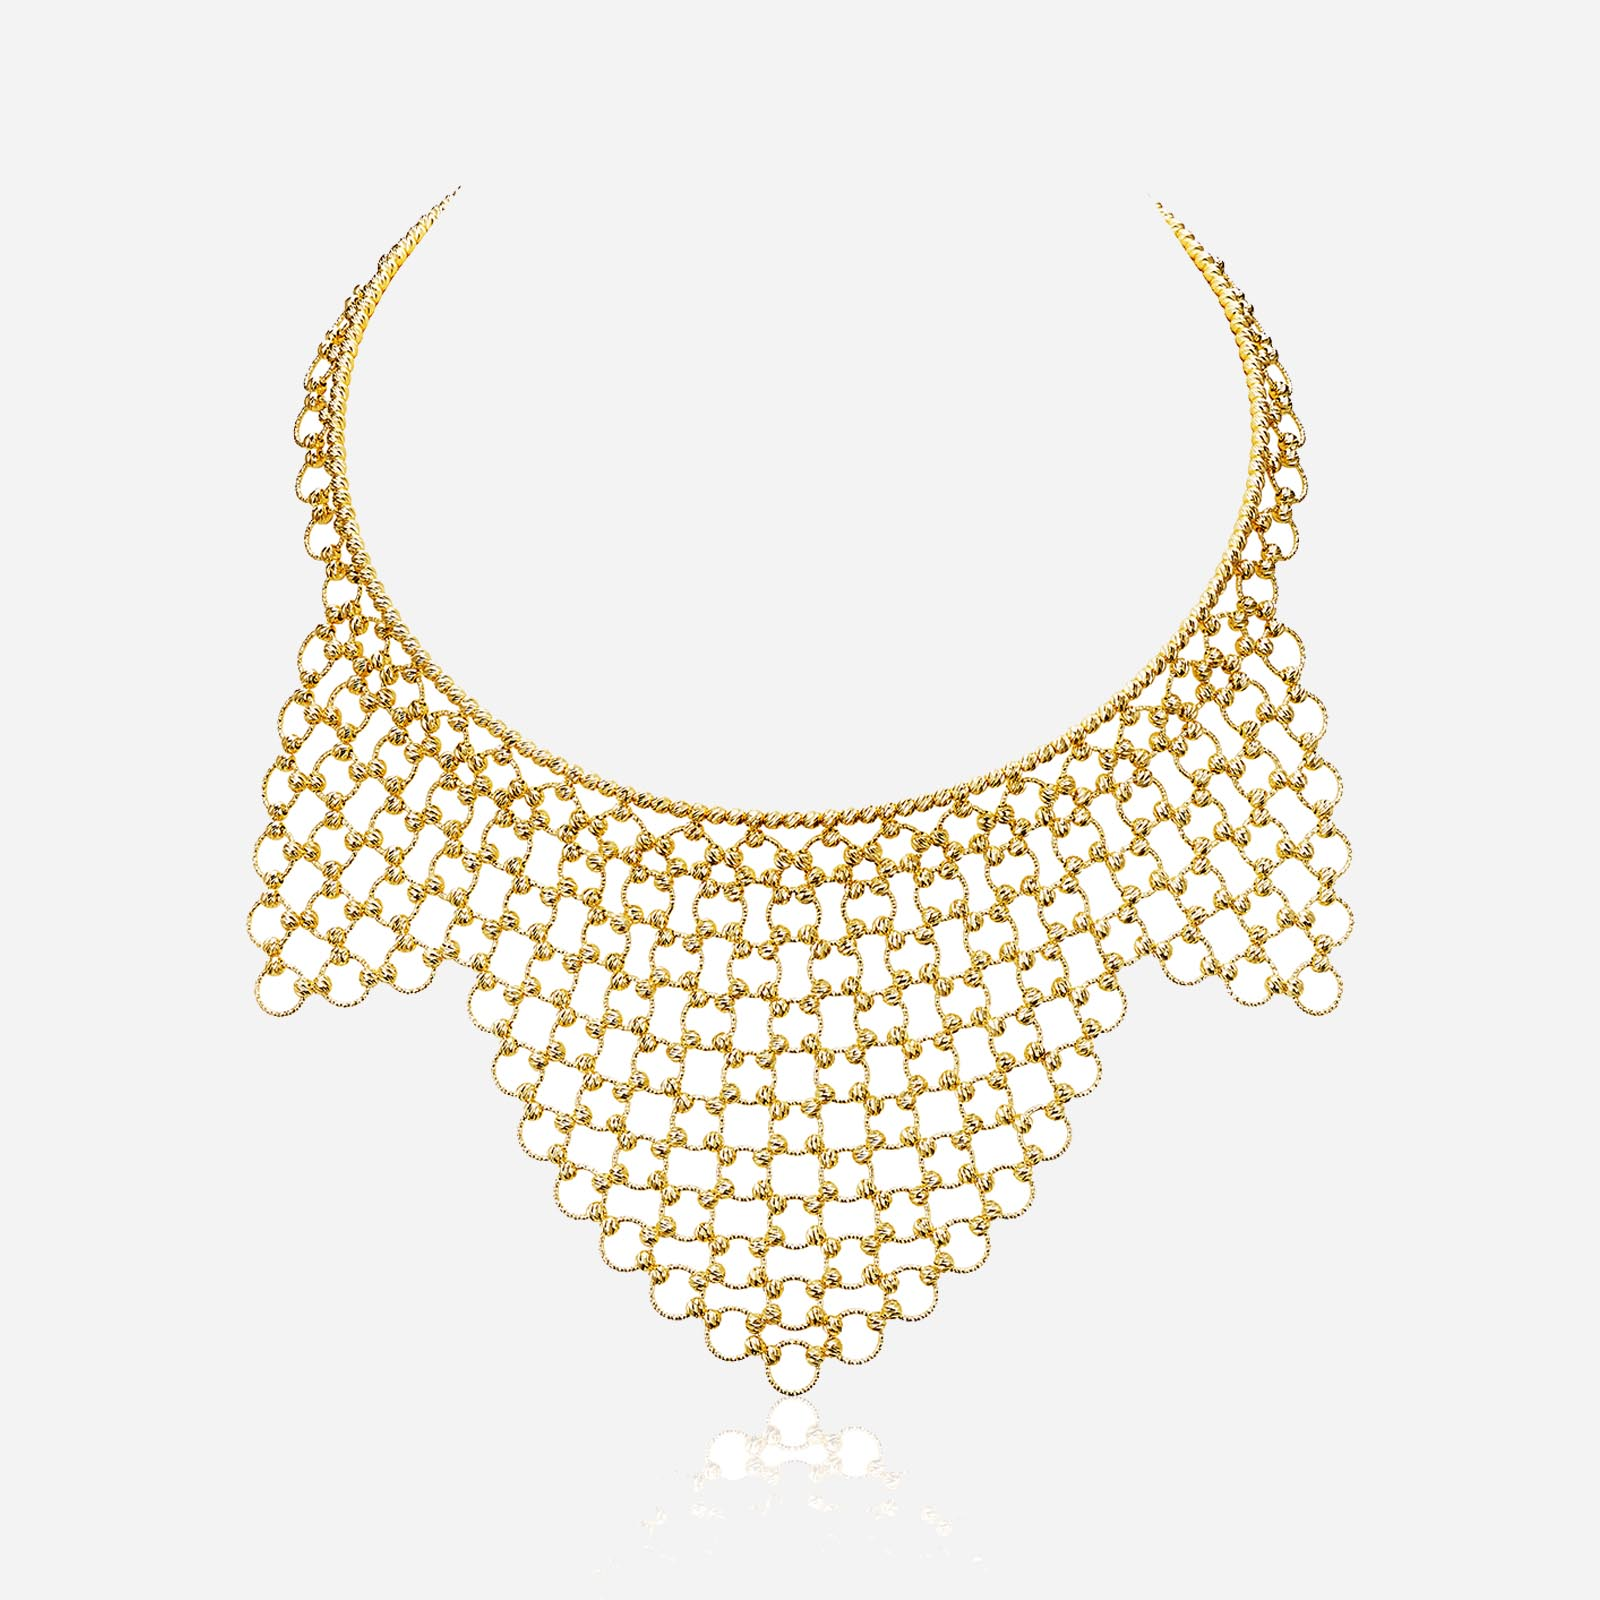 The Lady – Her Glamour Necklace